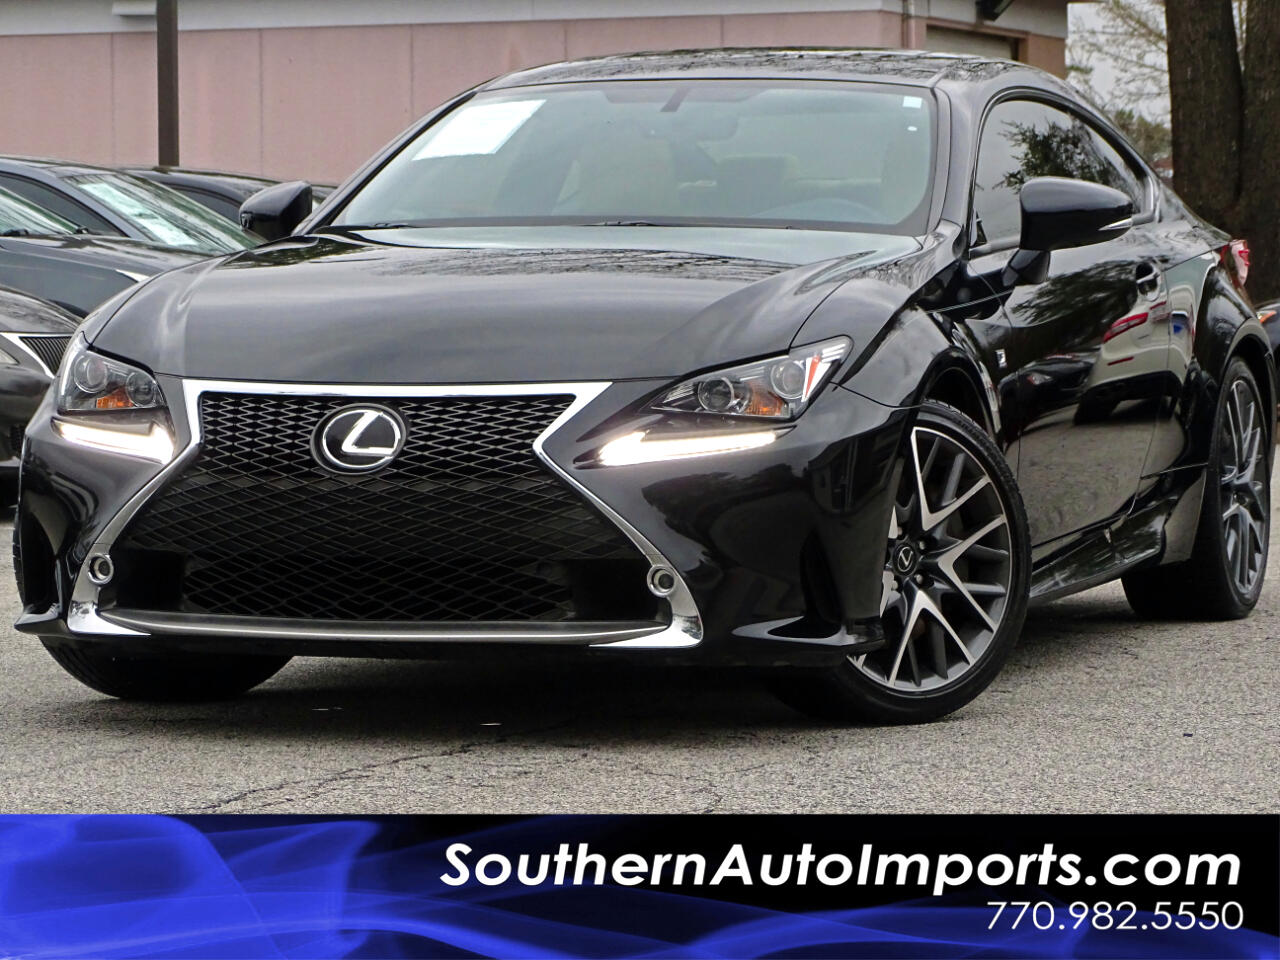 2015 Lexus RC 350 F-Sport w/Navigation 1owner